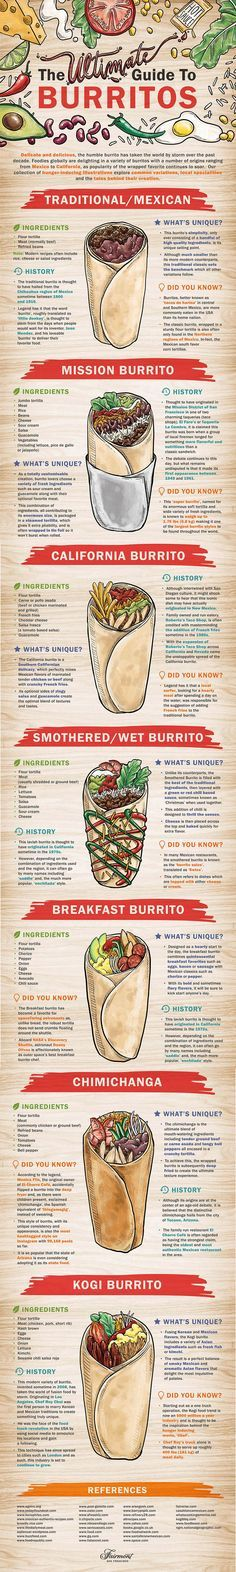 The Ultimate Guide To Burritos